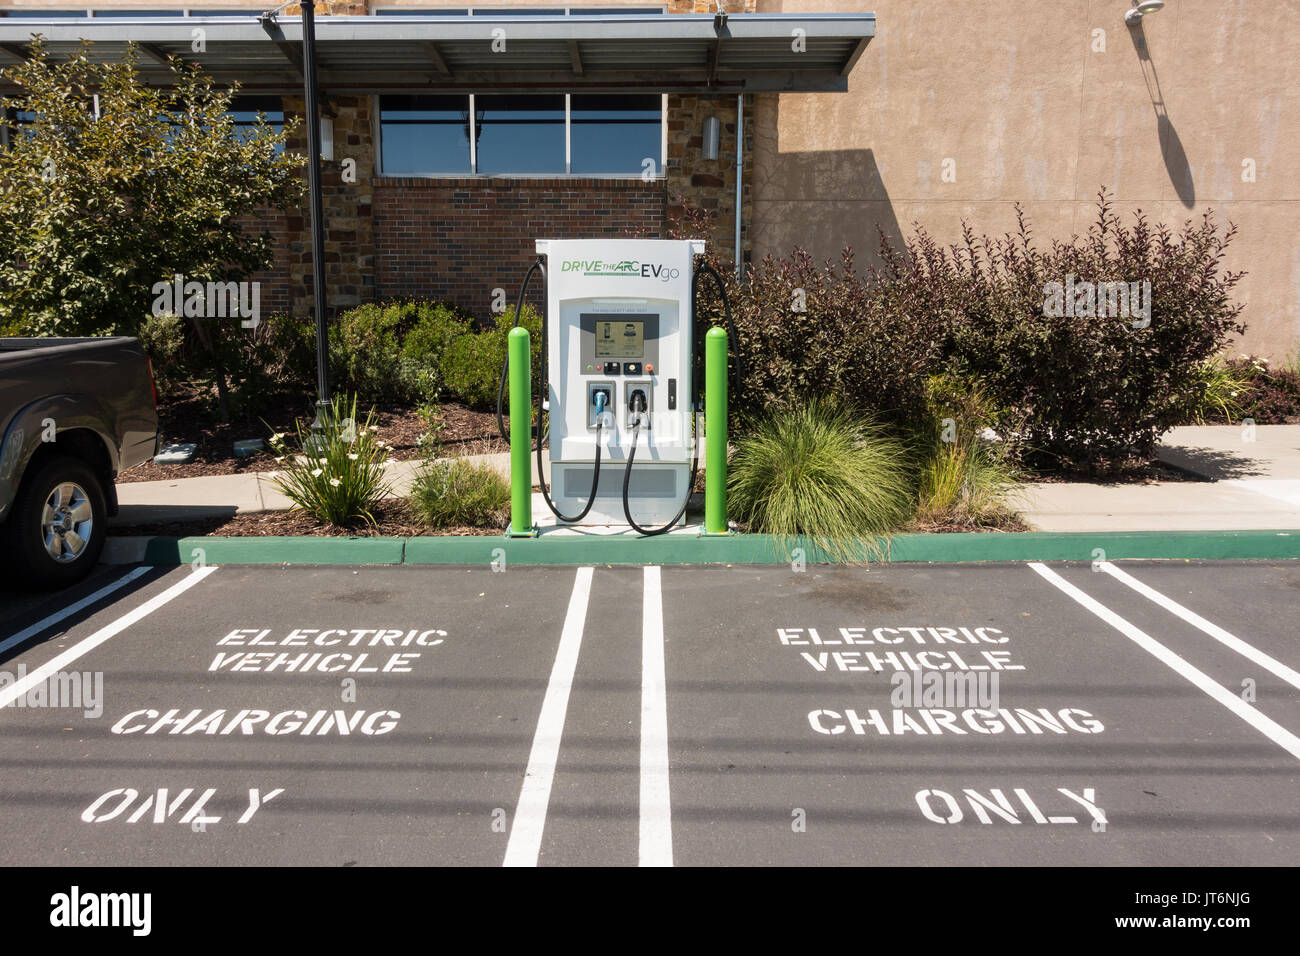 EV Electric Vehicle Charging Stations and parking spots at the front of the Whole Foods Market in Roseville, California - Stock Image